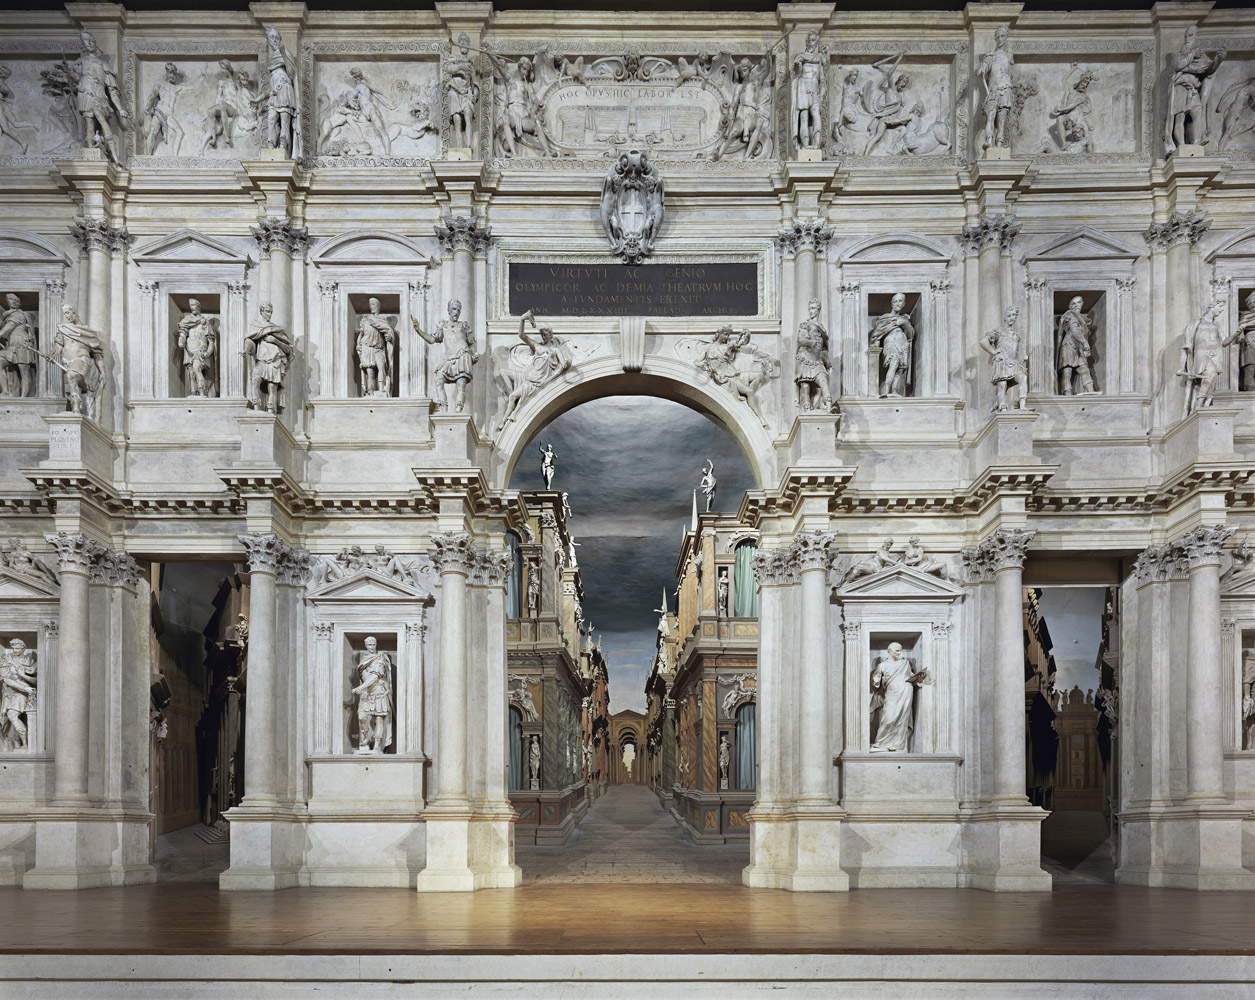 Teatro Olimpico, Vicenza, Italy, 2010, by David Leventi. Fujicolor Crystal Archive print on Dibond of the interior of the Olympic Theatre.